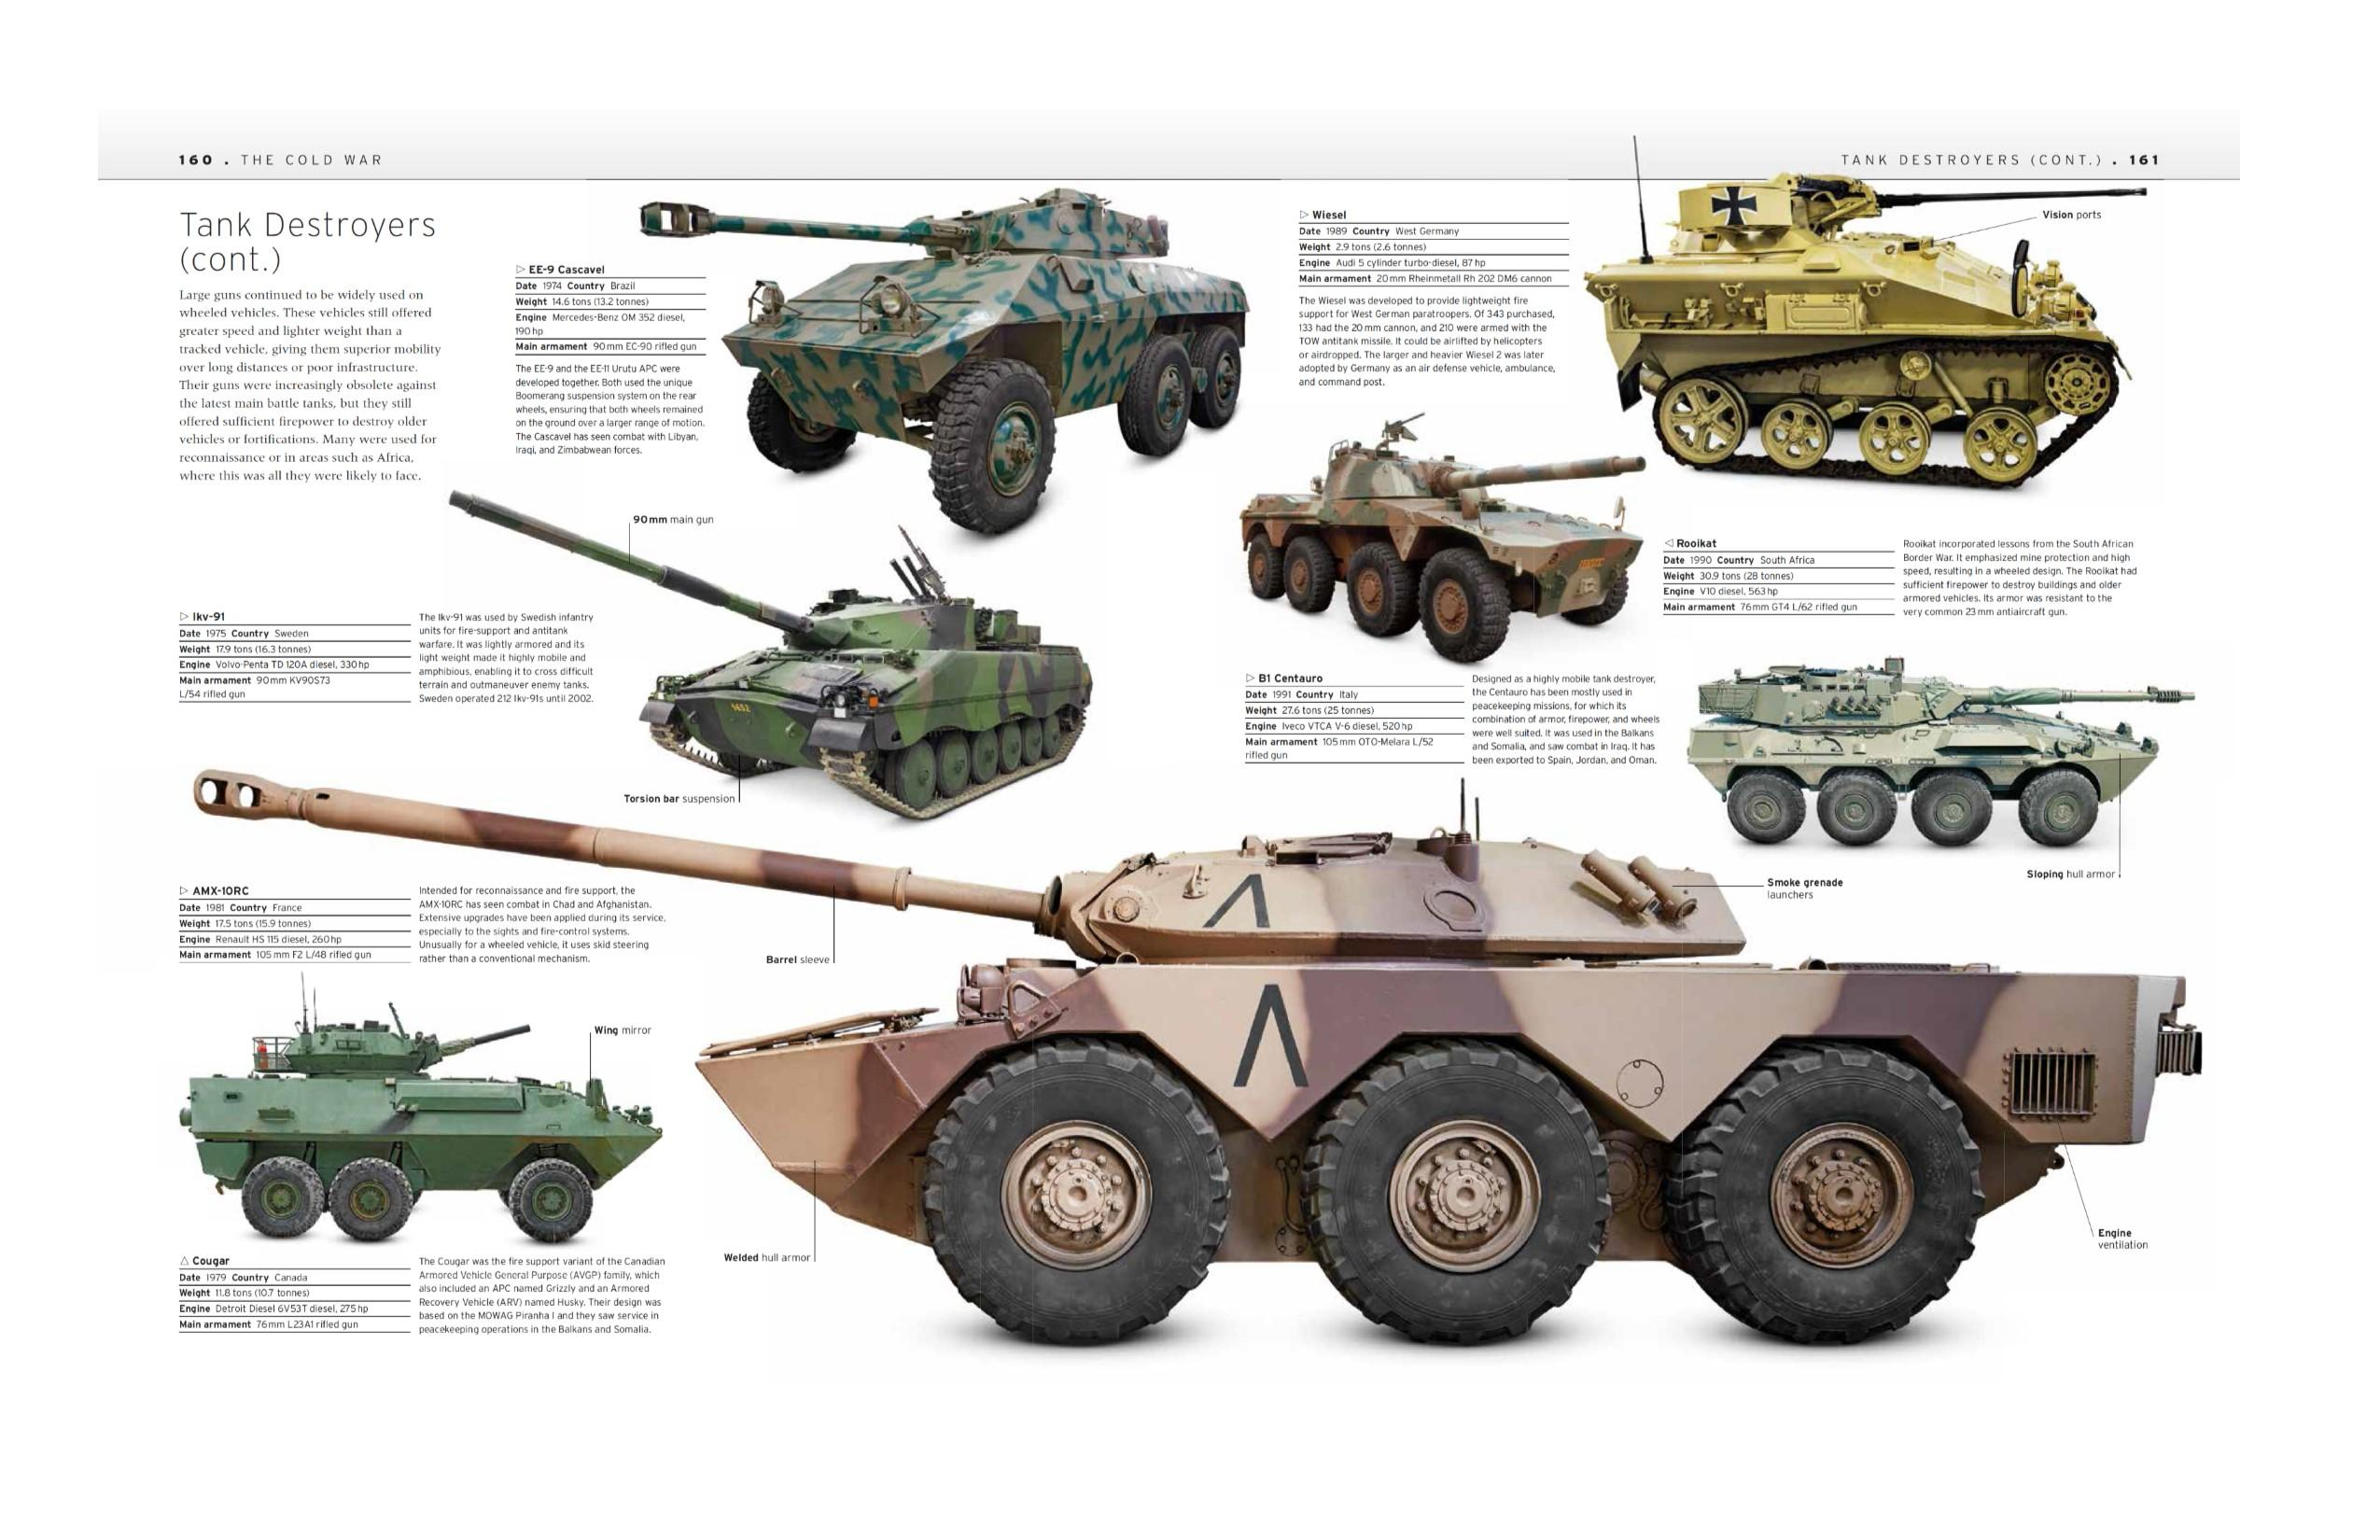 Tank: The Definitive Visual History of Armored Vehicles: DK